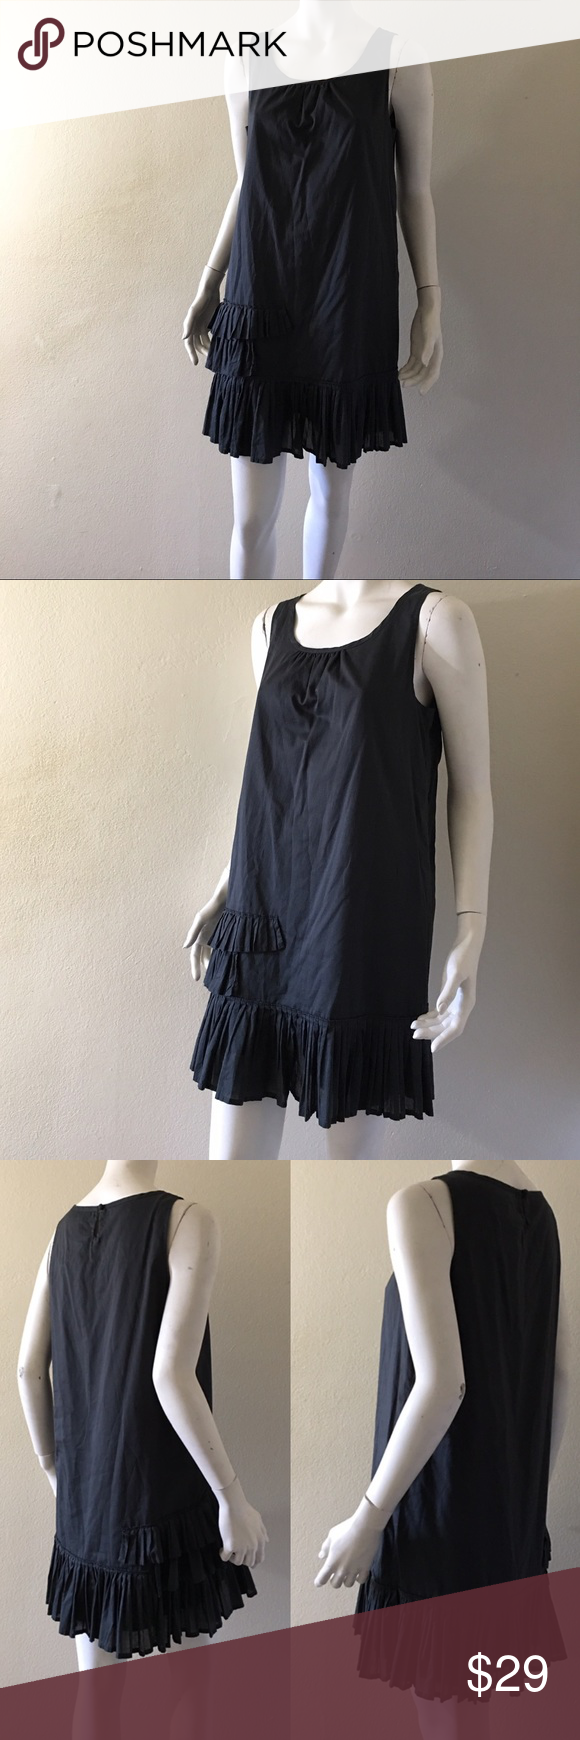 """J. Crew Ruffled Dark Olive Cotton Dress Pre-loved in good condition.                                       Straight silhouette. Falls above knee, 33 1/2"""" from high point of shoulder. PTP 19"""". Sleeveless. Ruffle detailing on one side and hem. Lined. 100% cotton. Machine washable. J. Crew Dresses Mini"""